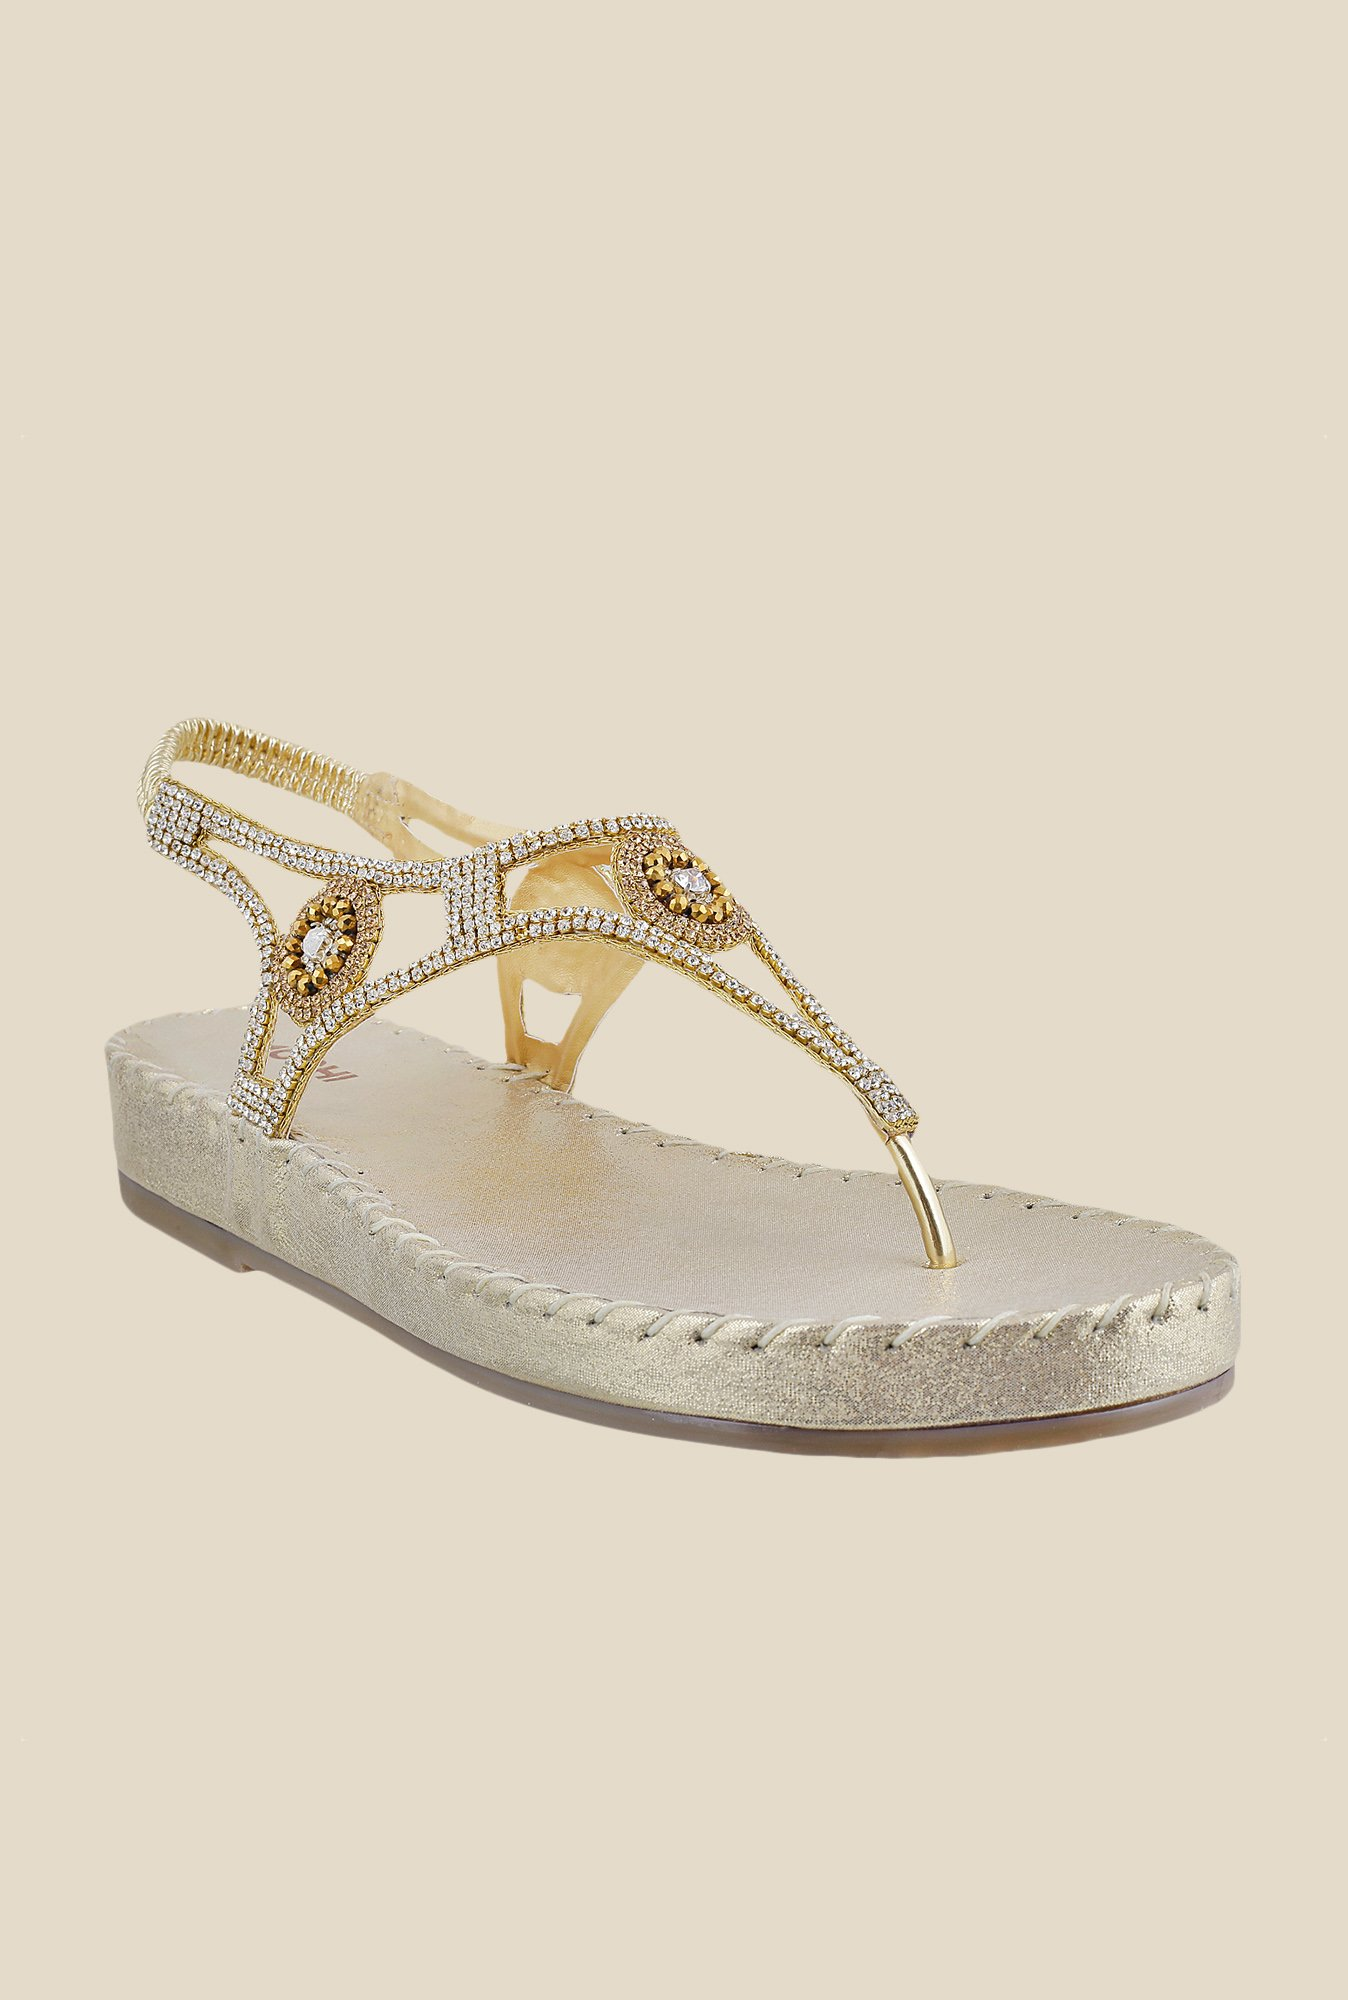 Mochi Golden Sling Back Sandals